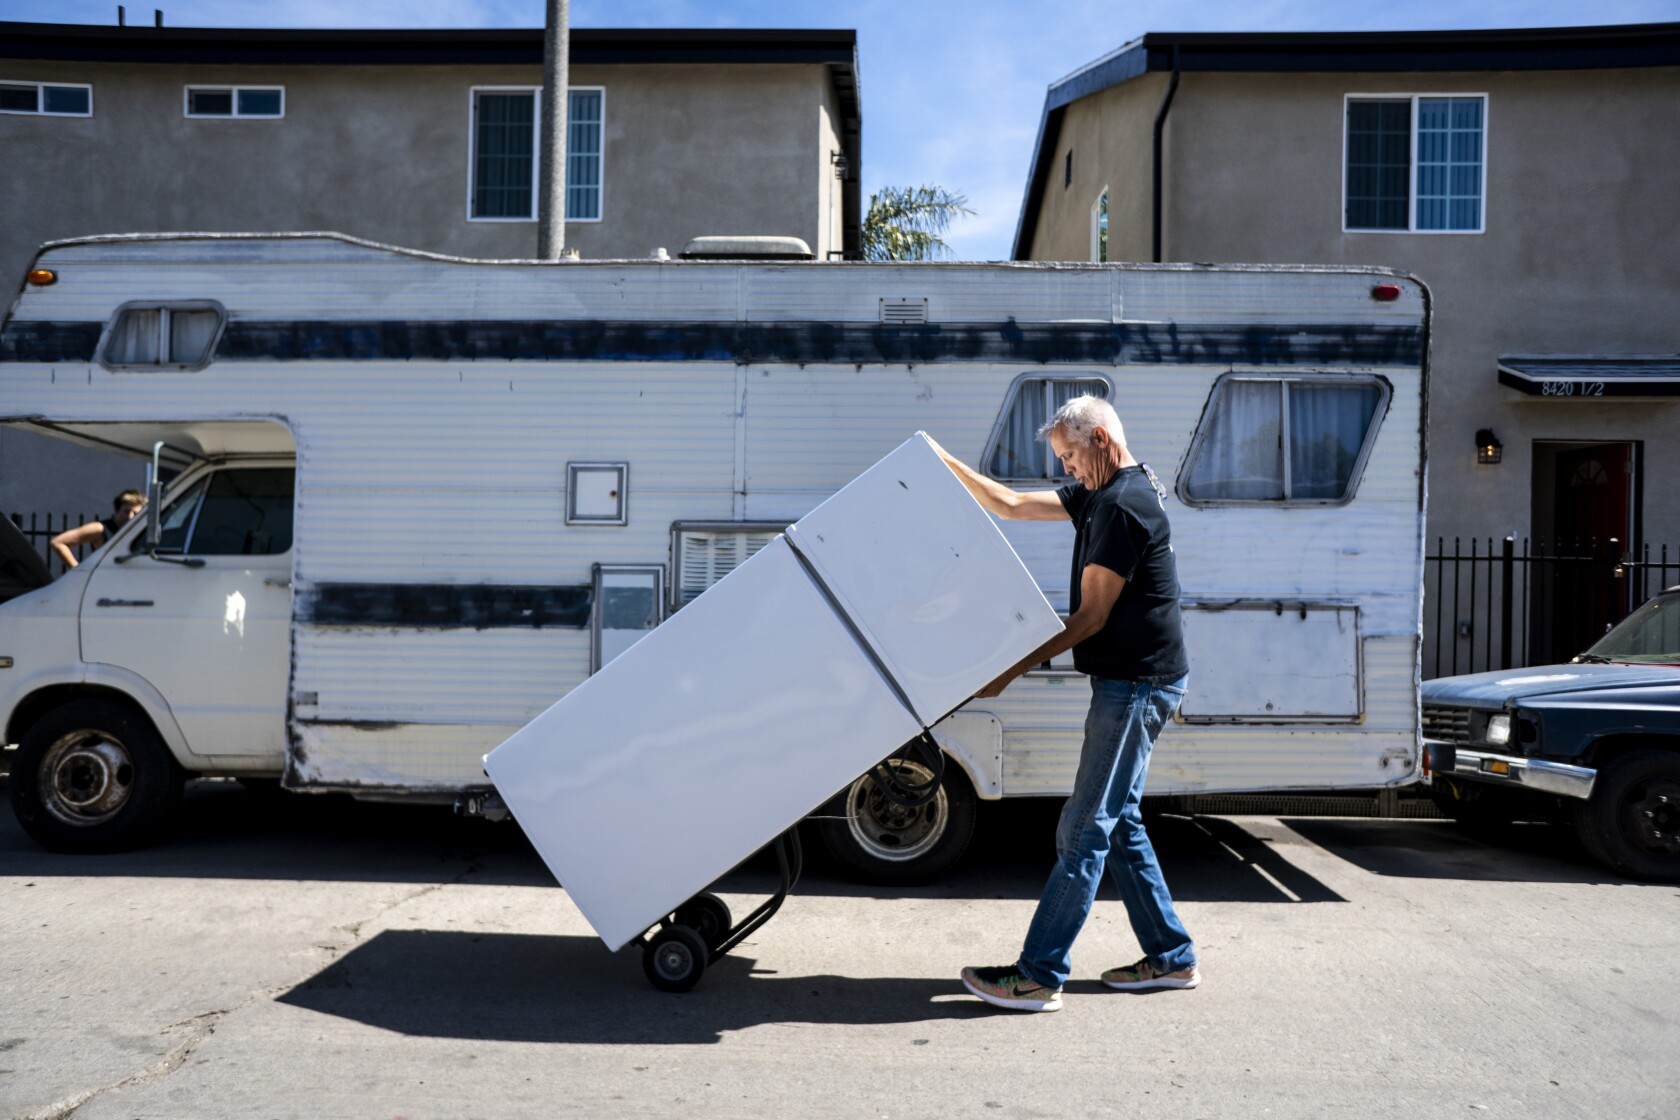 To house almost 600 homeless people, a Venice couple are working outside the system